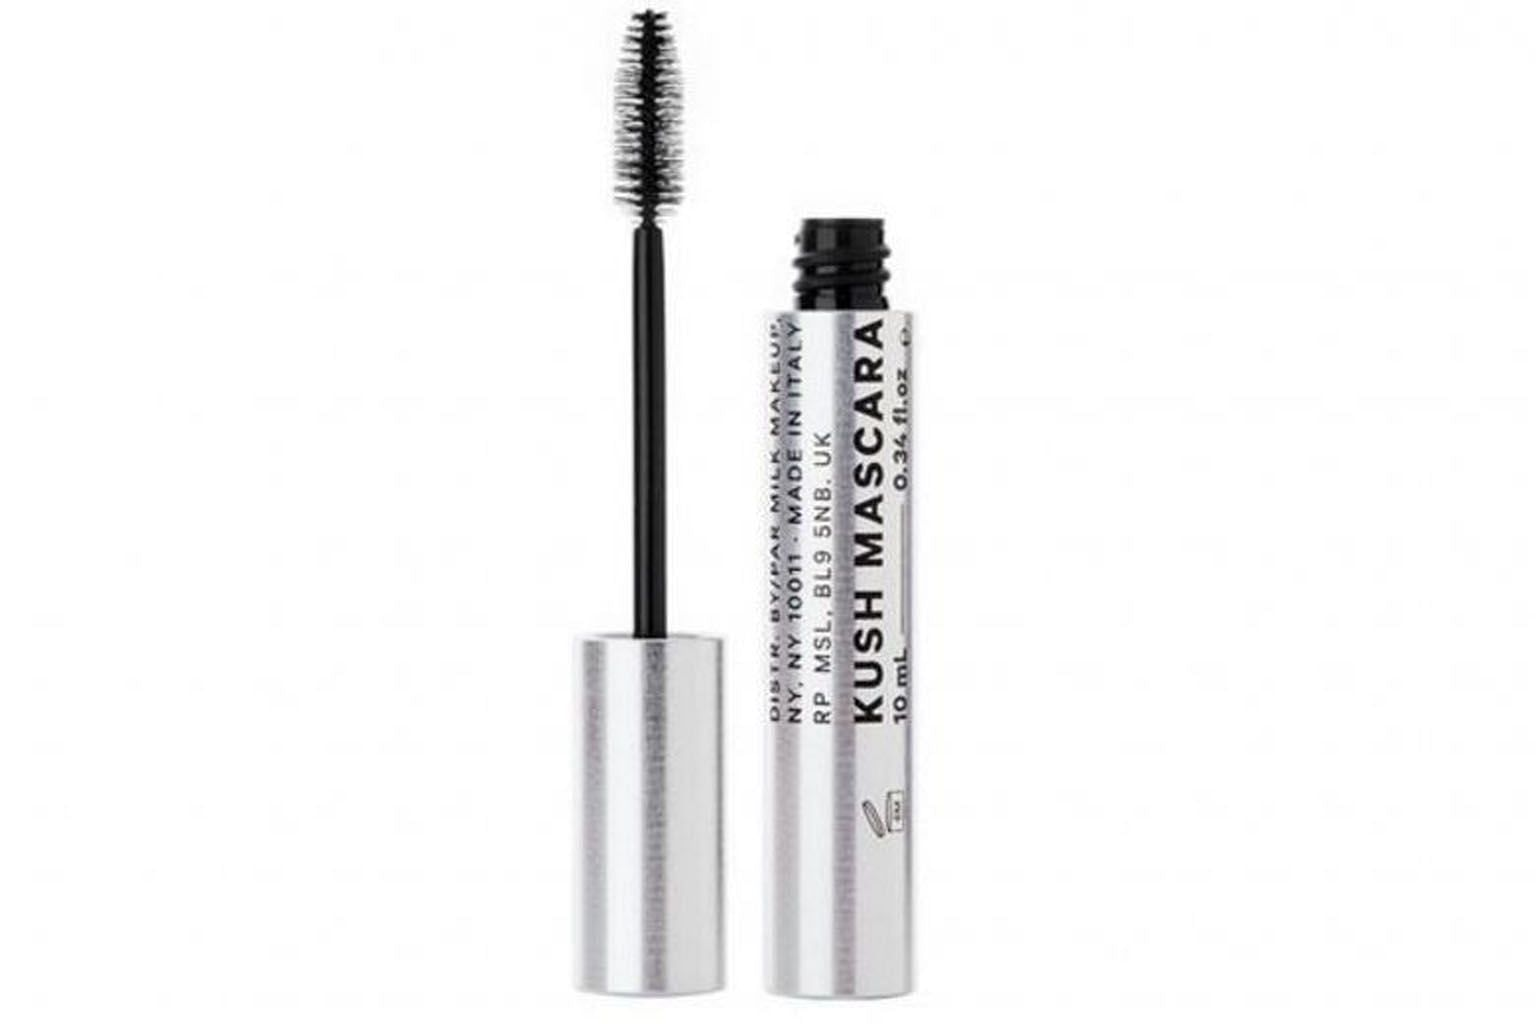 Cannabis sativa seed oil is listed as one of the ingredients in Kush High Volume Mascara, which is created by Milk Makeup, a cosmetics company based in New York City.